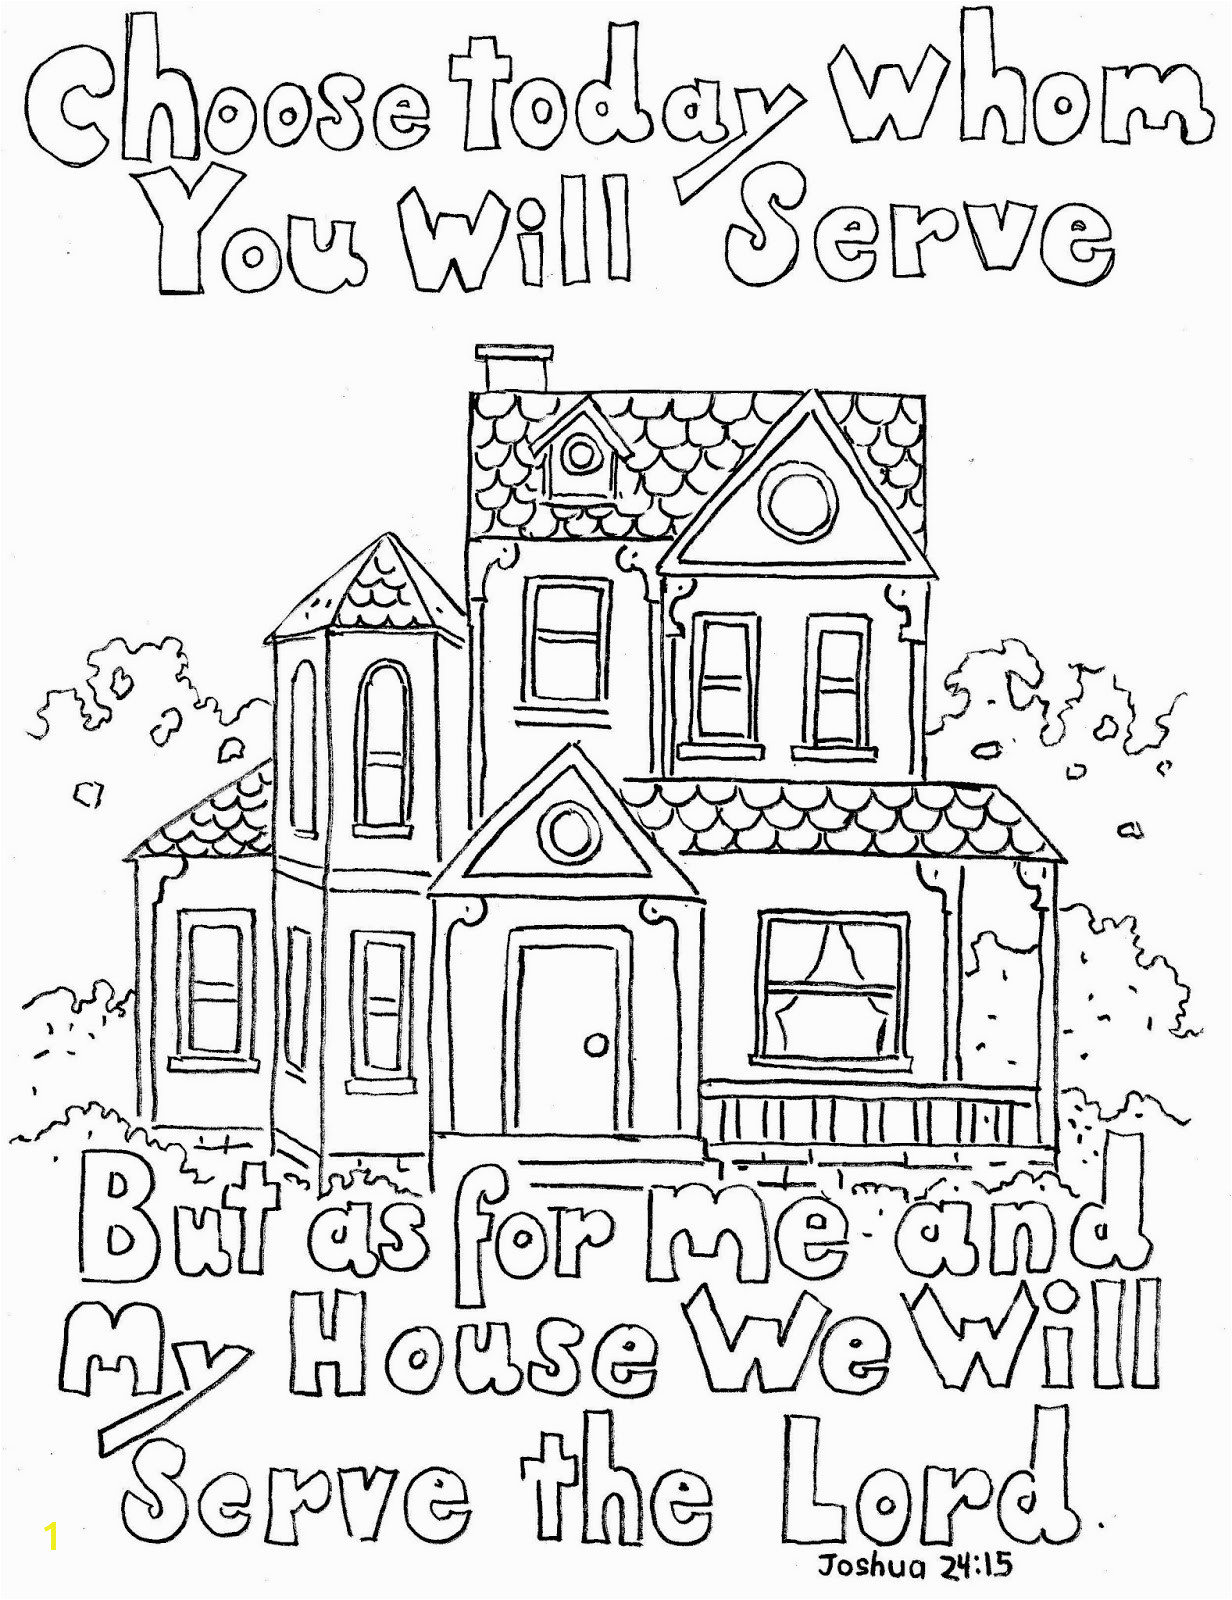 The Boxcar Children Coloring Pages Announcing Obey Coloring Page the Lord Joshua 24 15 Print and